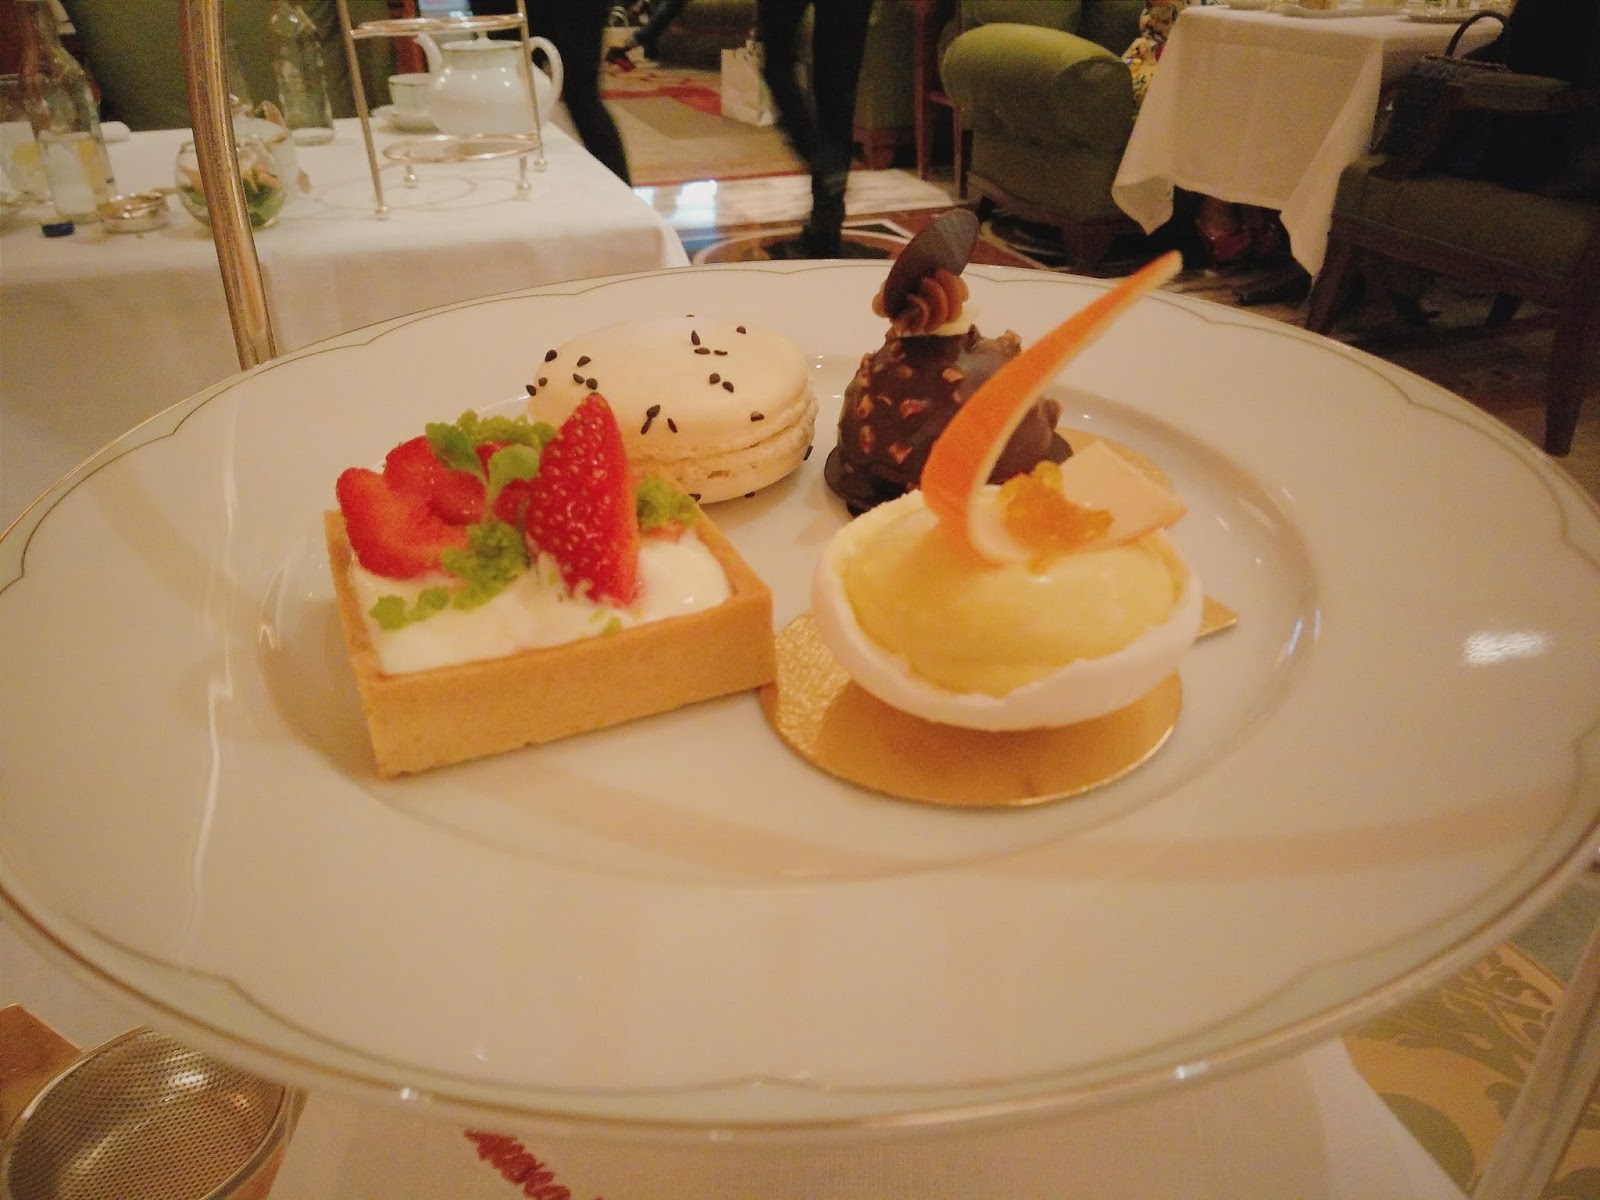 Afternoon Tea at the Dorchester pastries